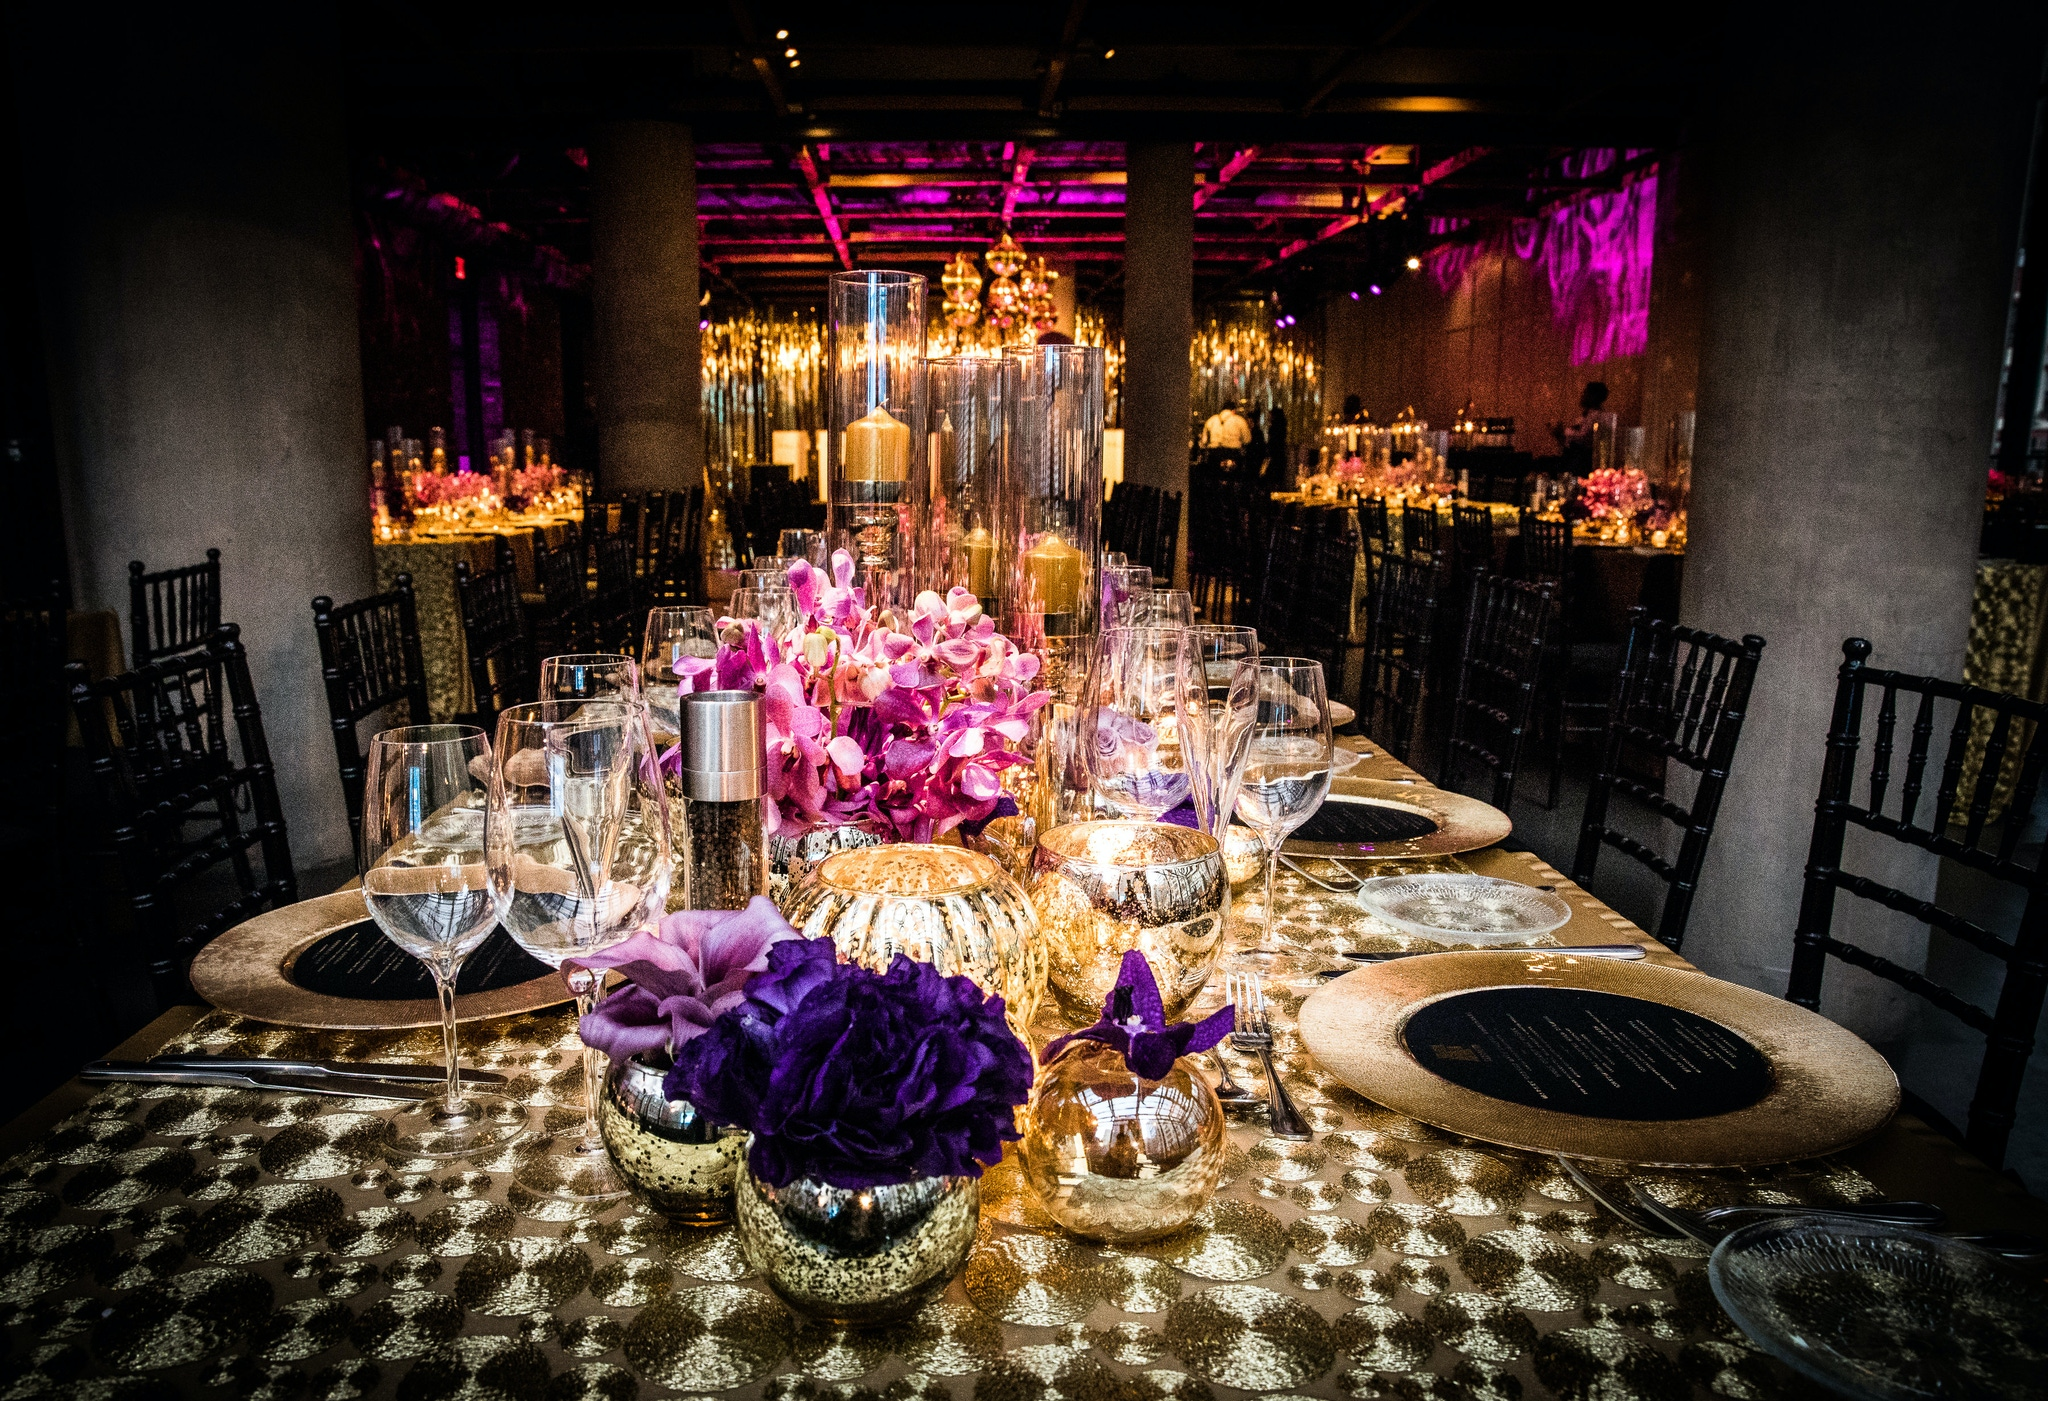 Pink and purple lights and flowers with gold records as plates at a venue in New York